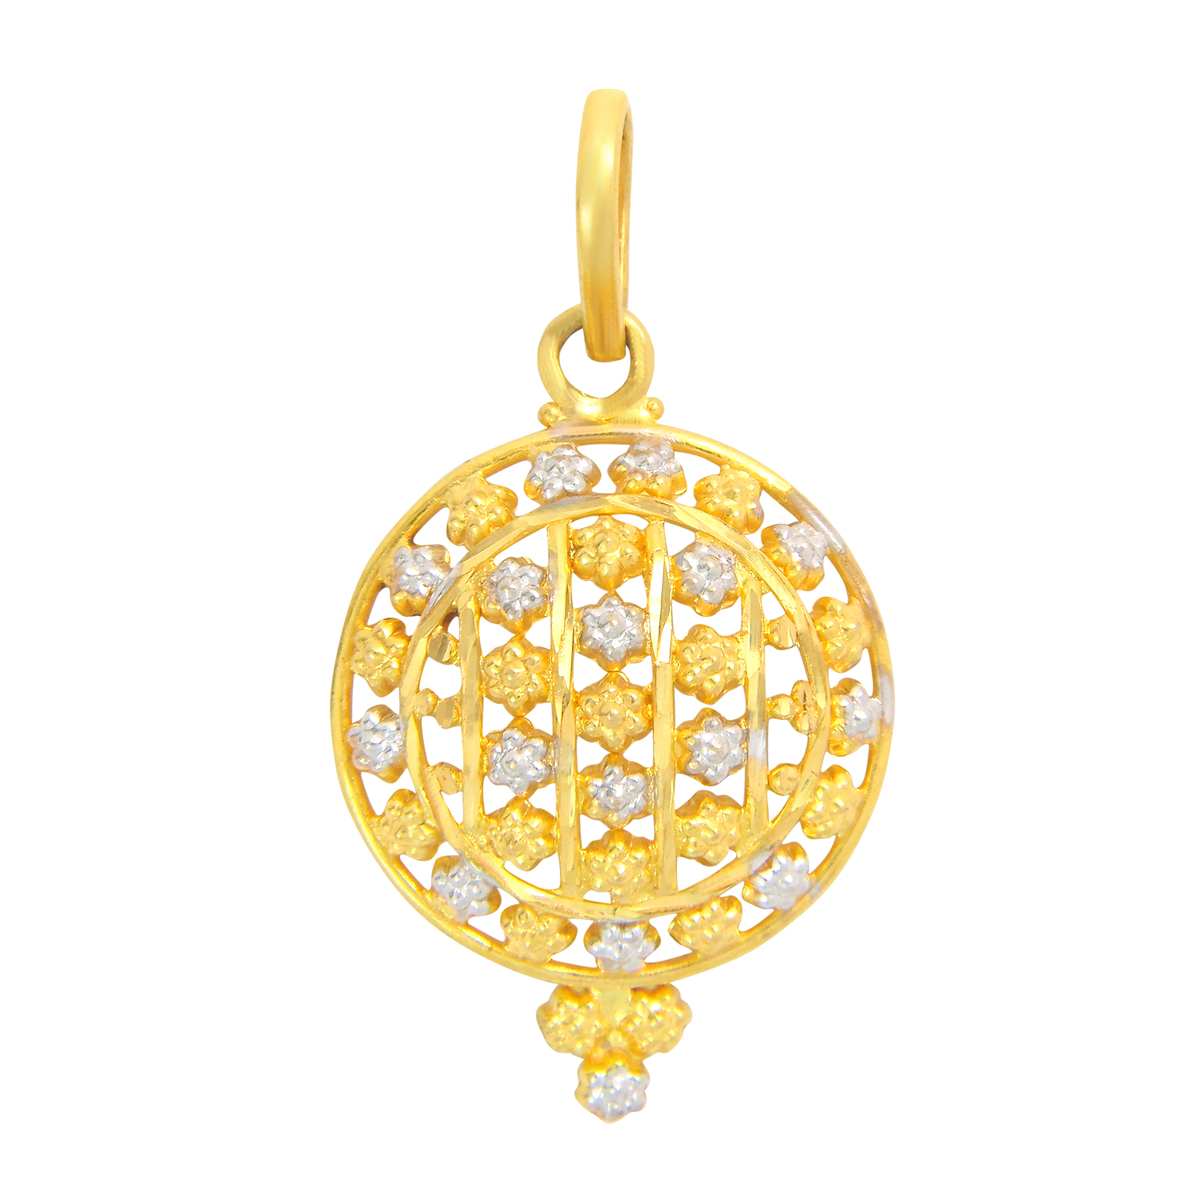 Popley 22Kt Gold Bandhan Pendant - A97